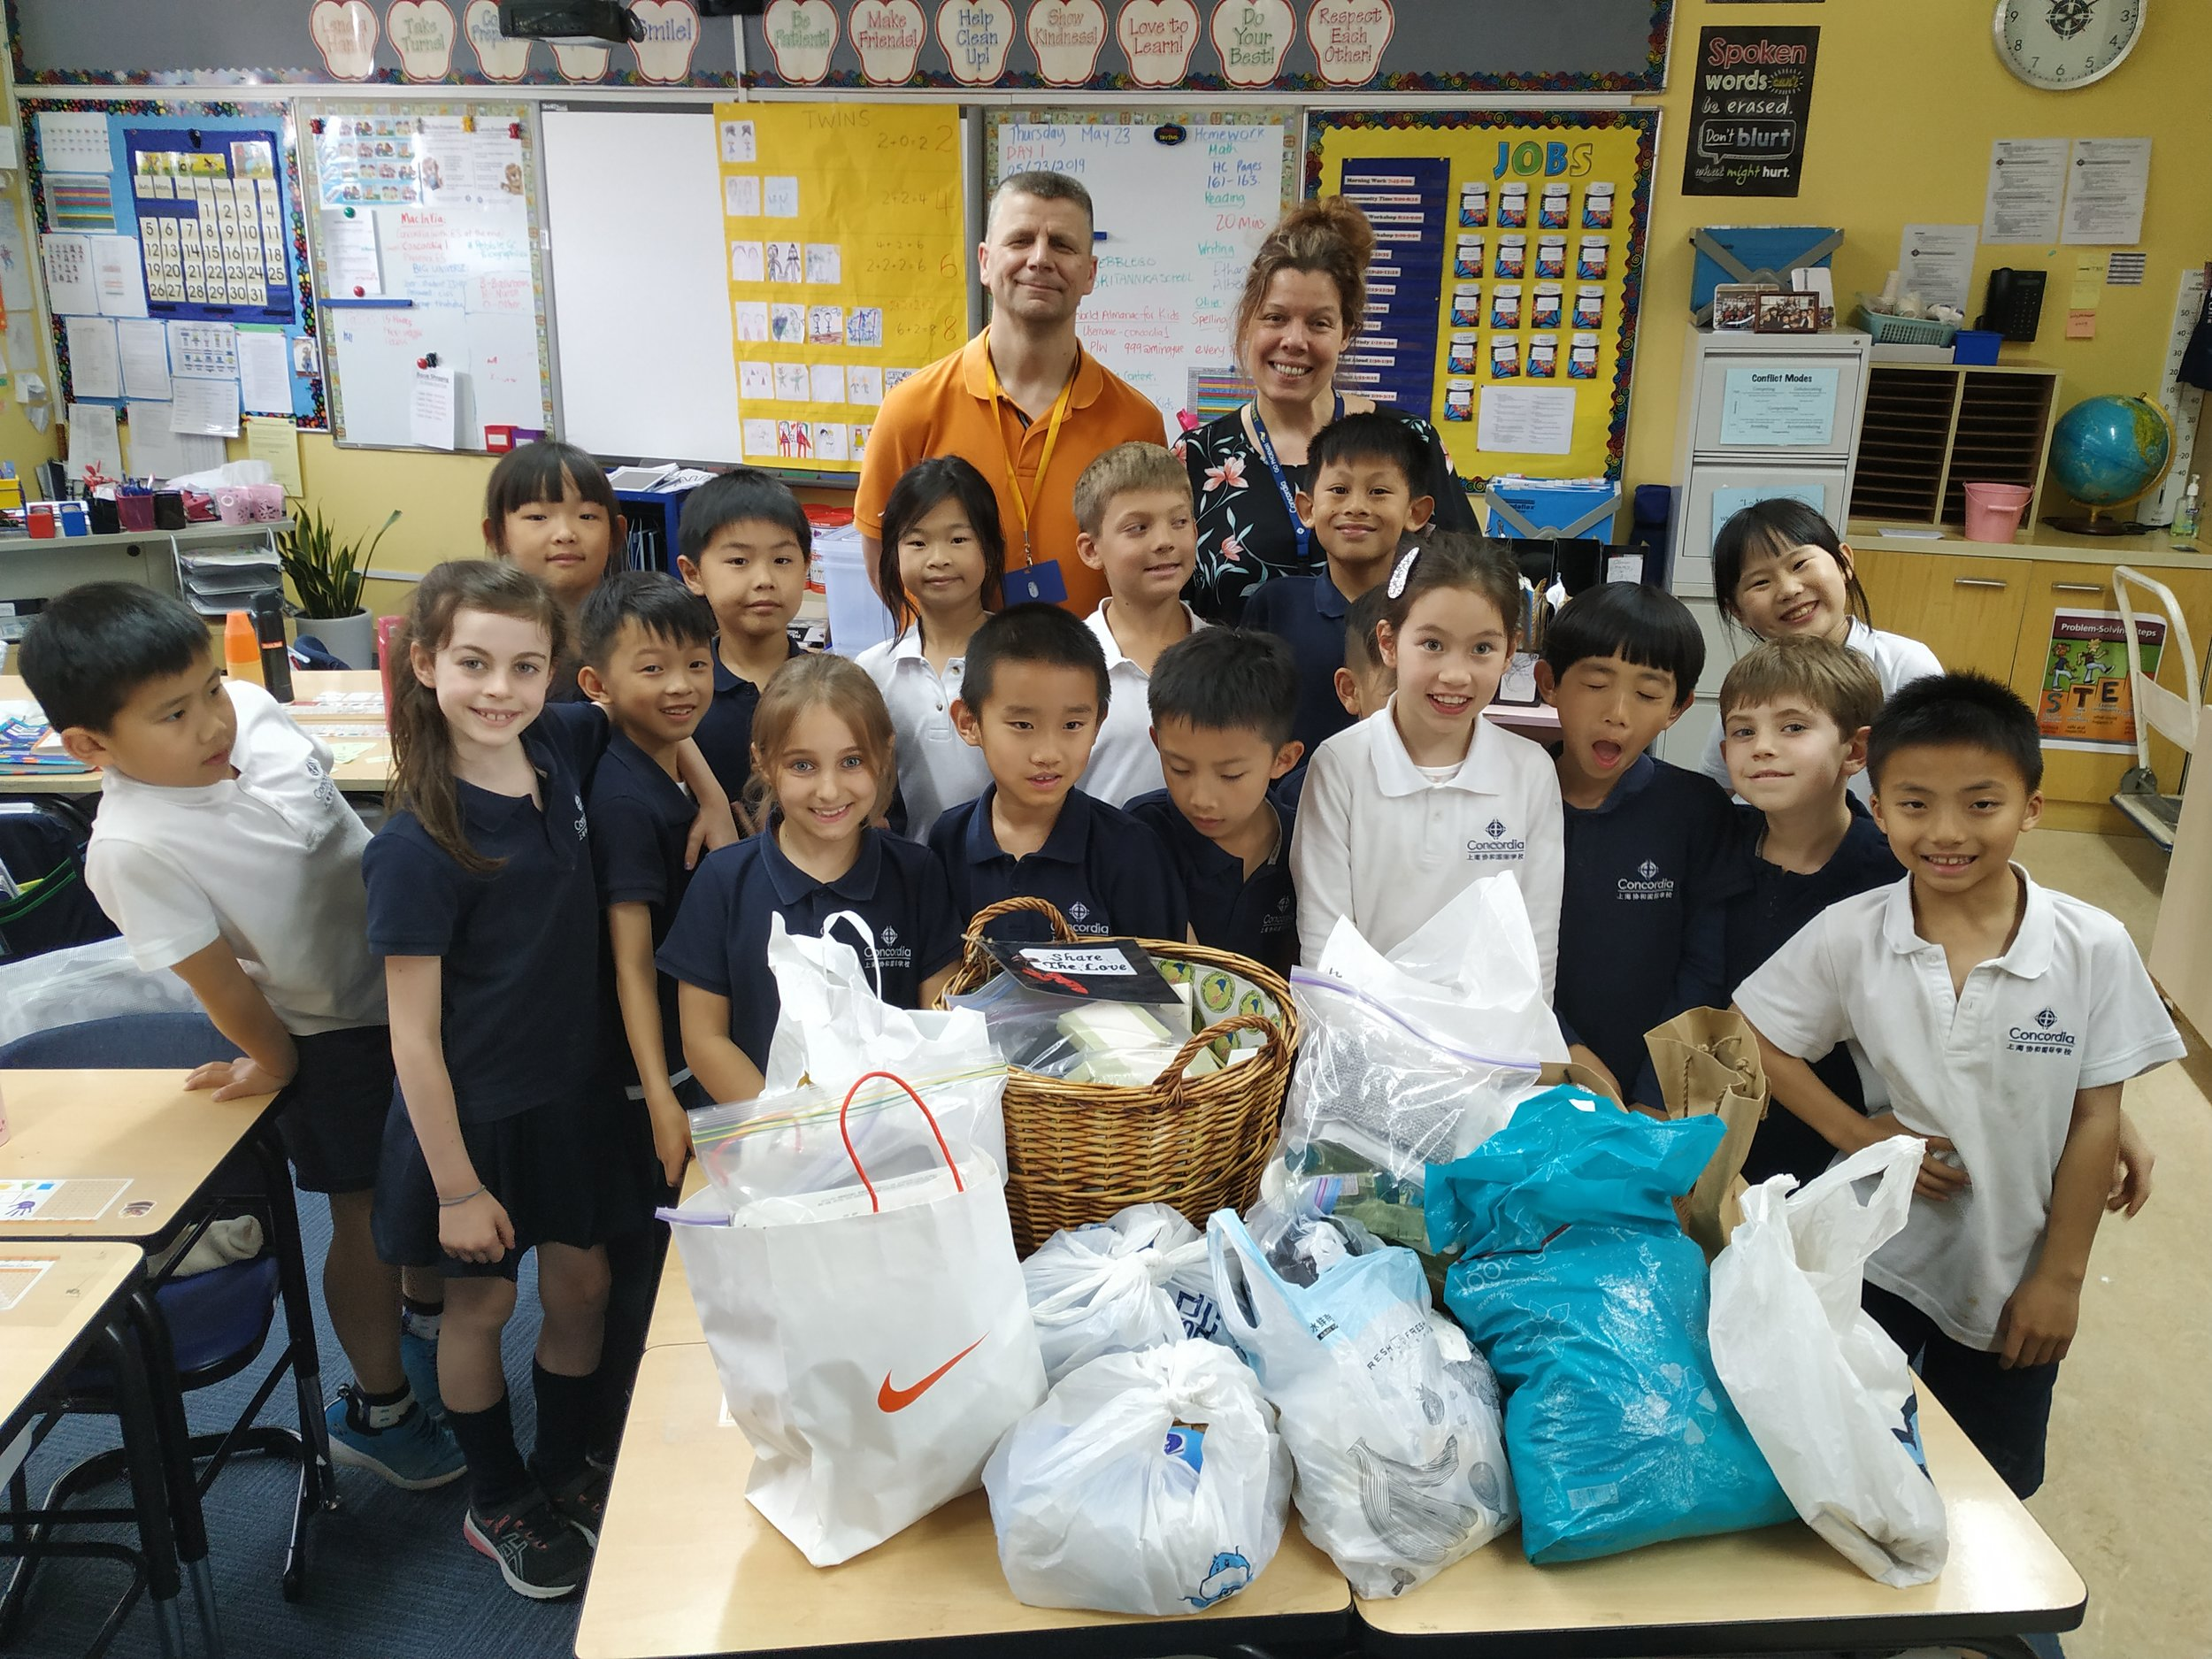 Gerie from Home Sweet Home and Corinna Raasch's grade 2 class. The students gathered up hotel toiletry items throughout the year to donate to Home Sweet Home, and then decided to engage in a Service Learning experience to teach parents about homelessness in Shanghai.